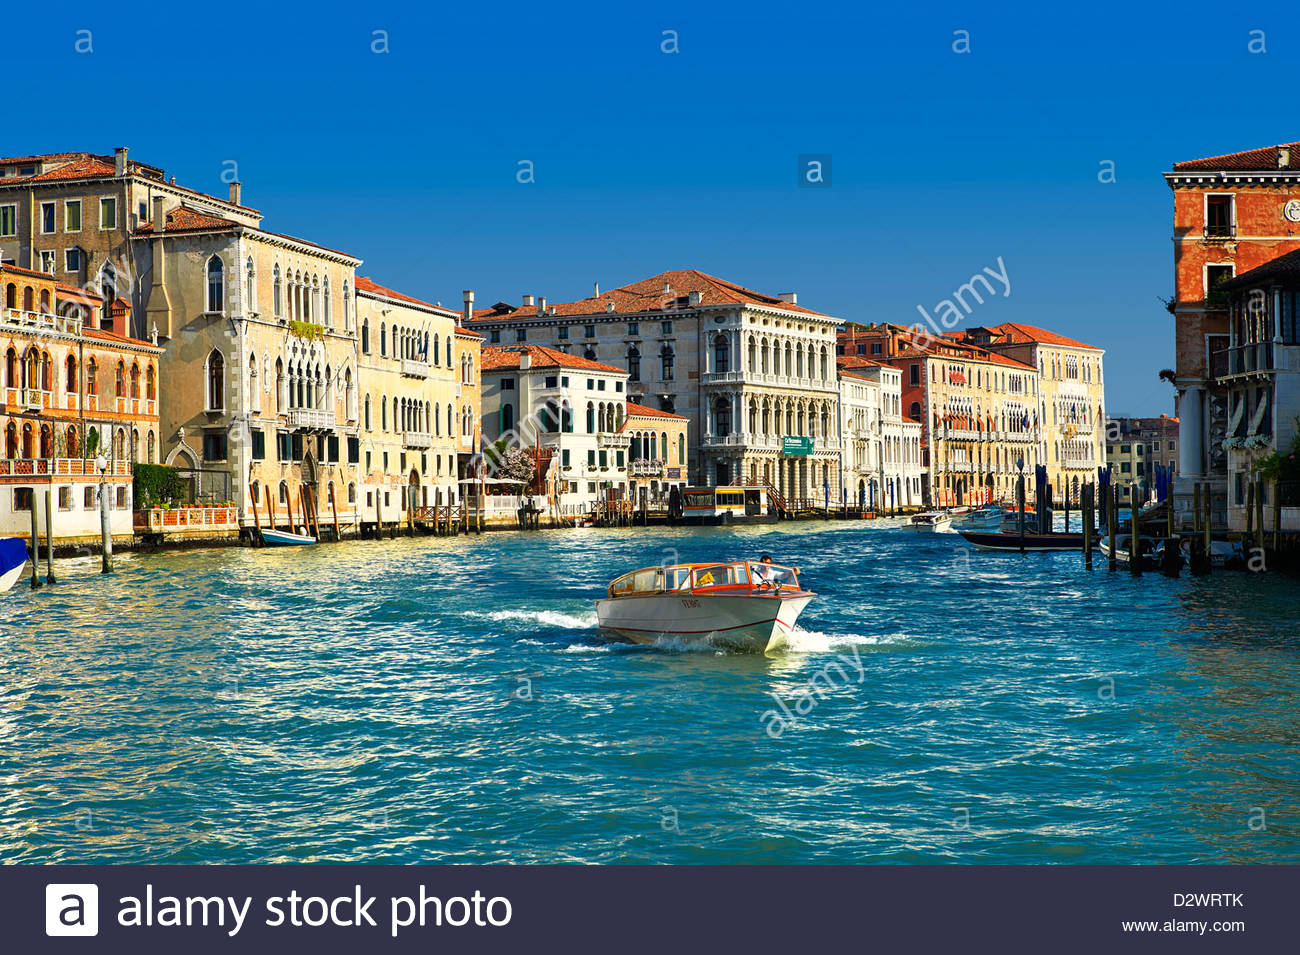 Palaces on the Grand Canal Venice - Stock Image